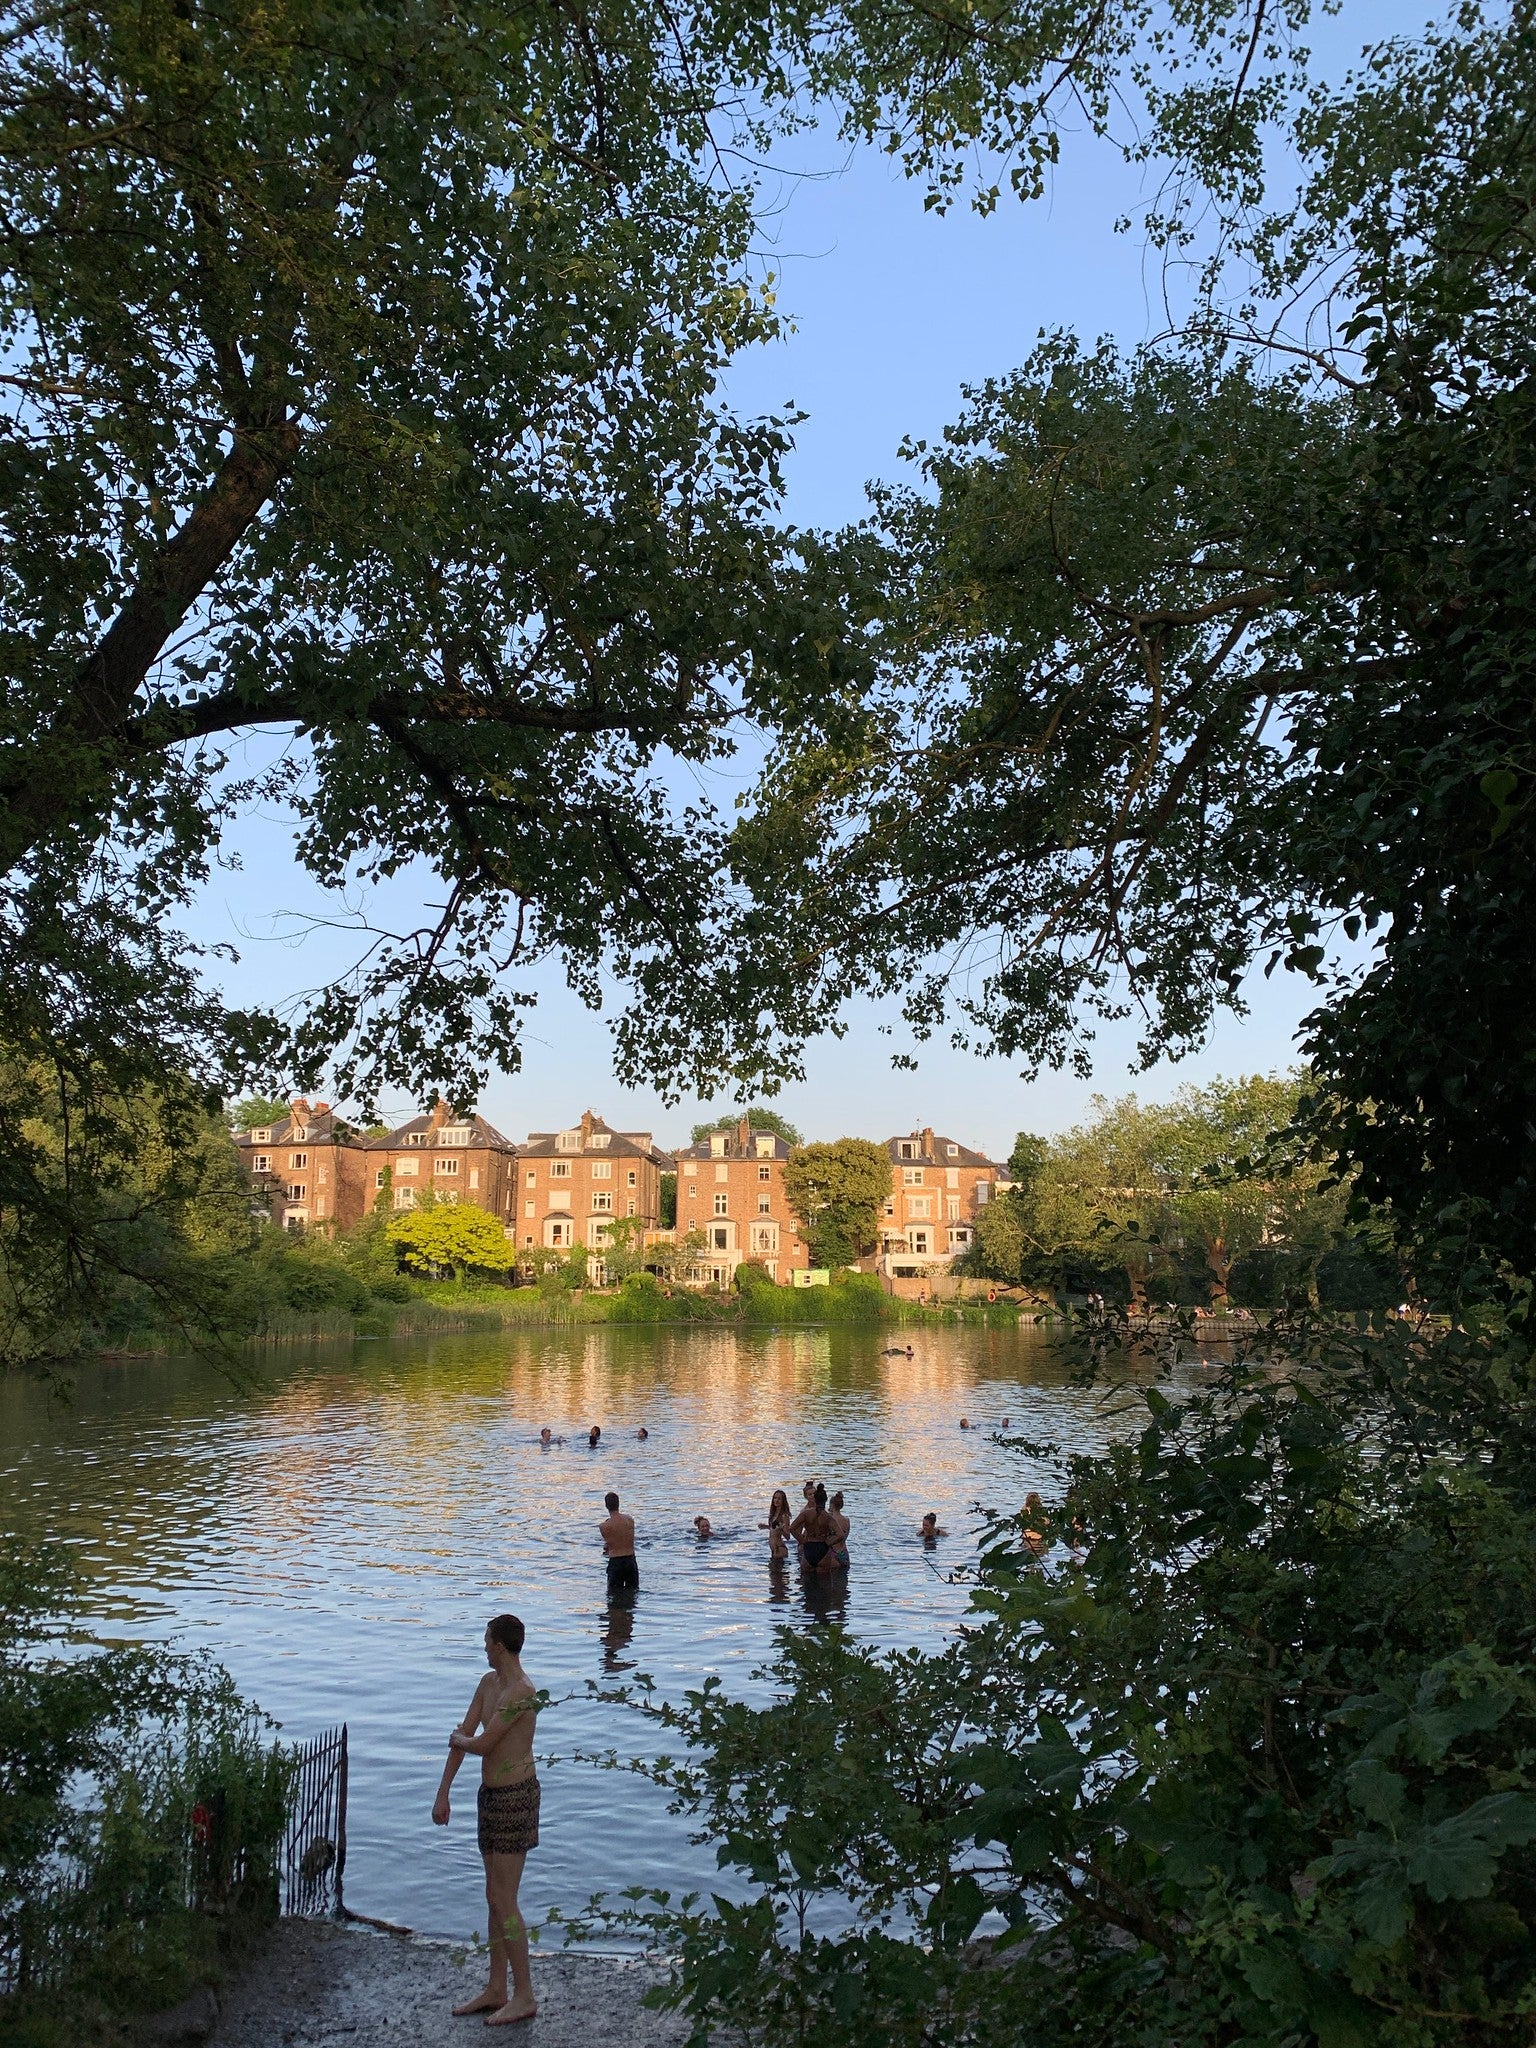 Hampstead's ponds